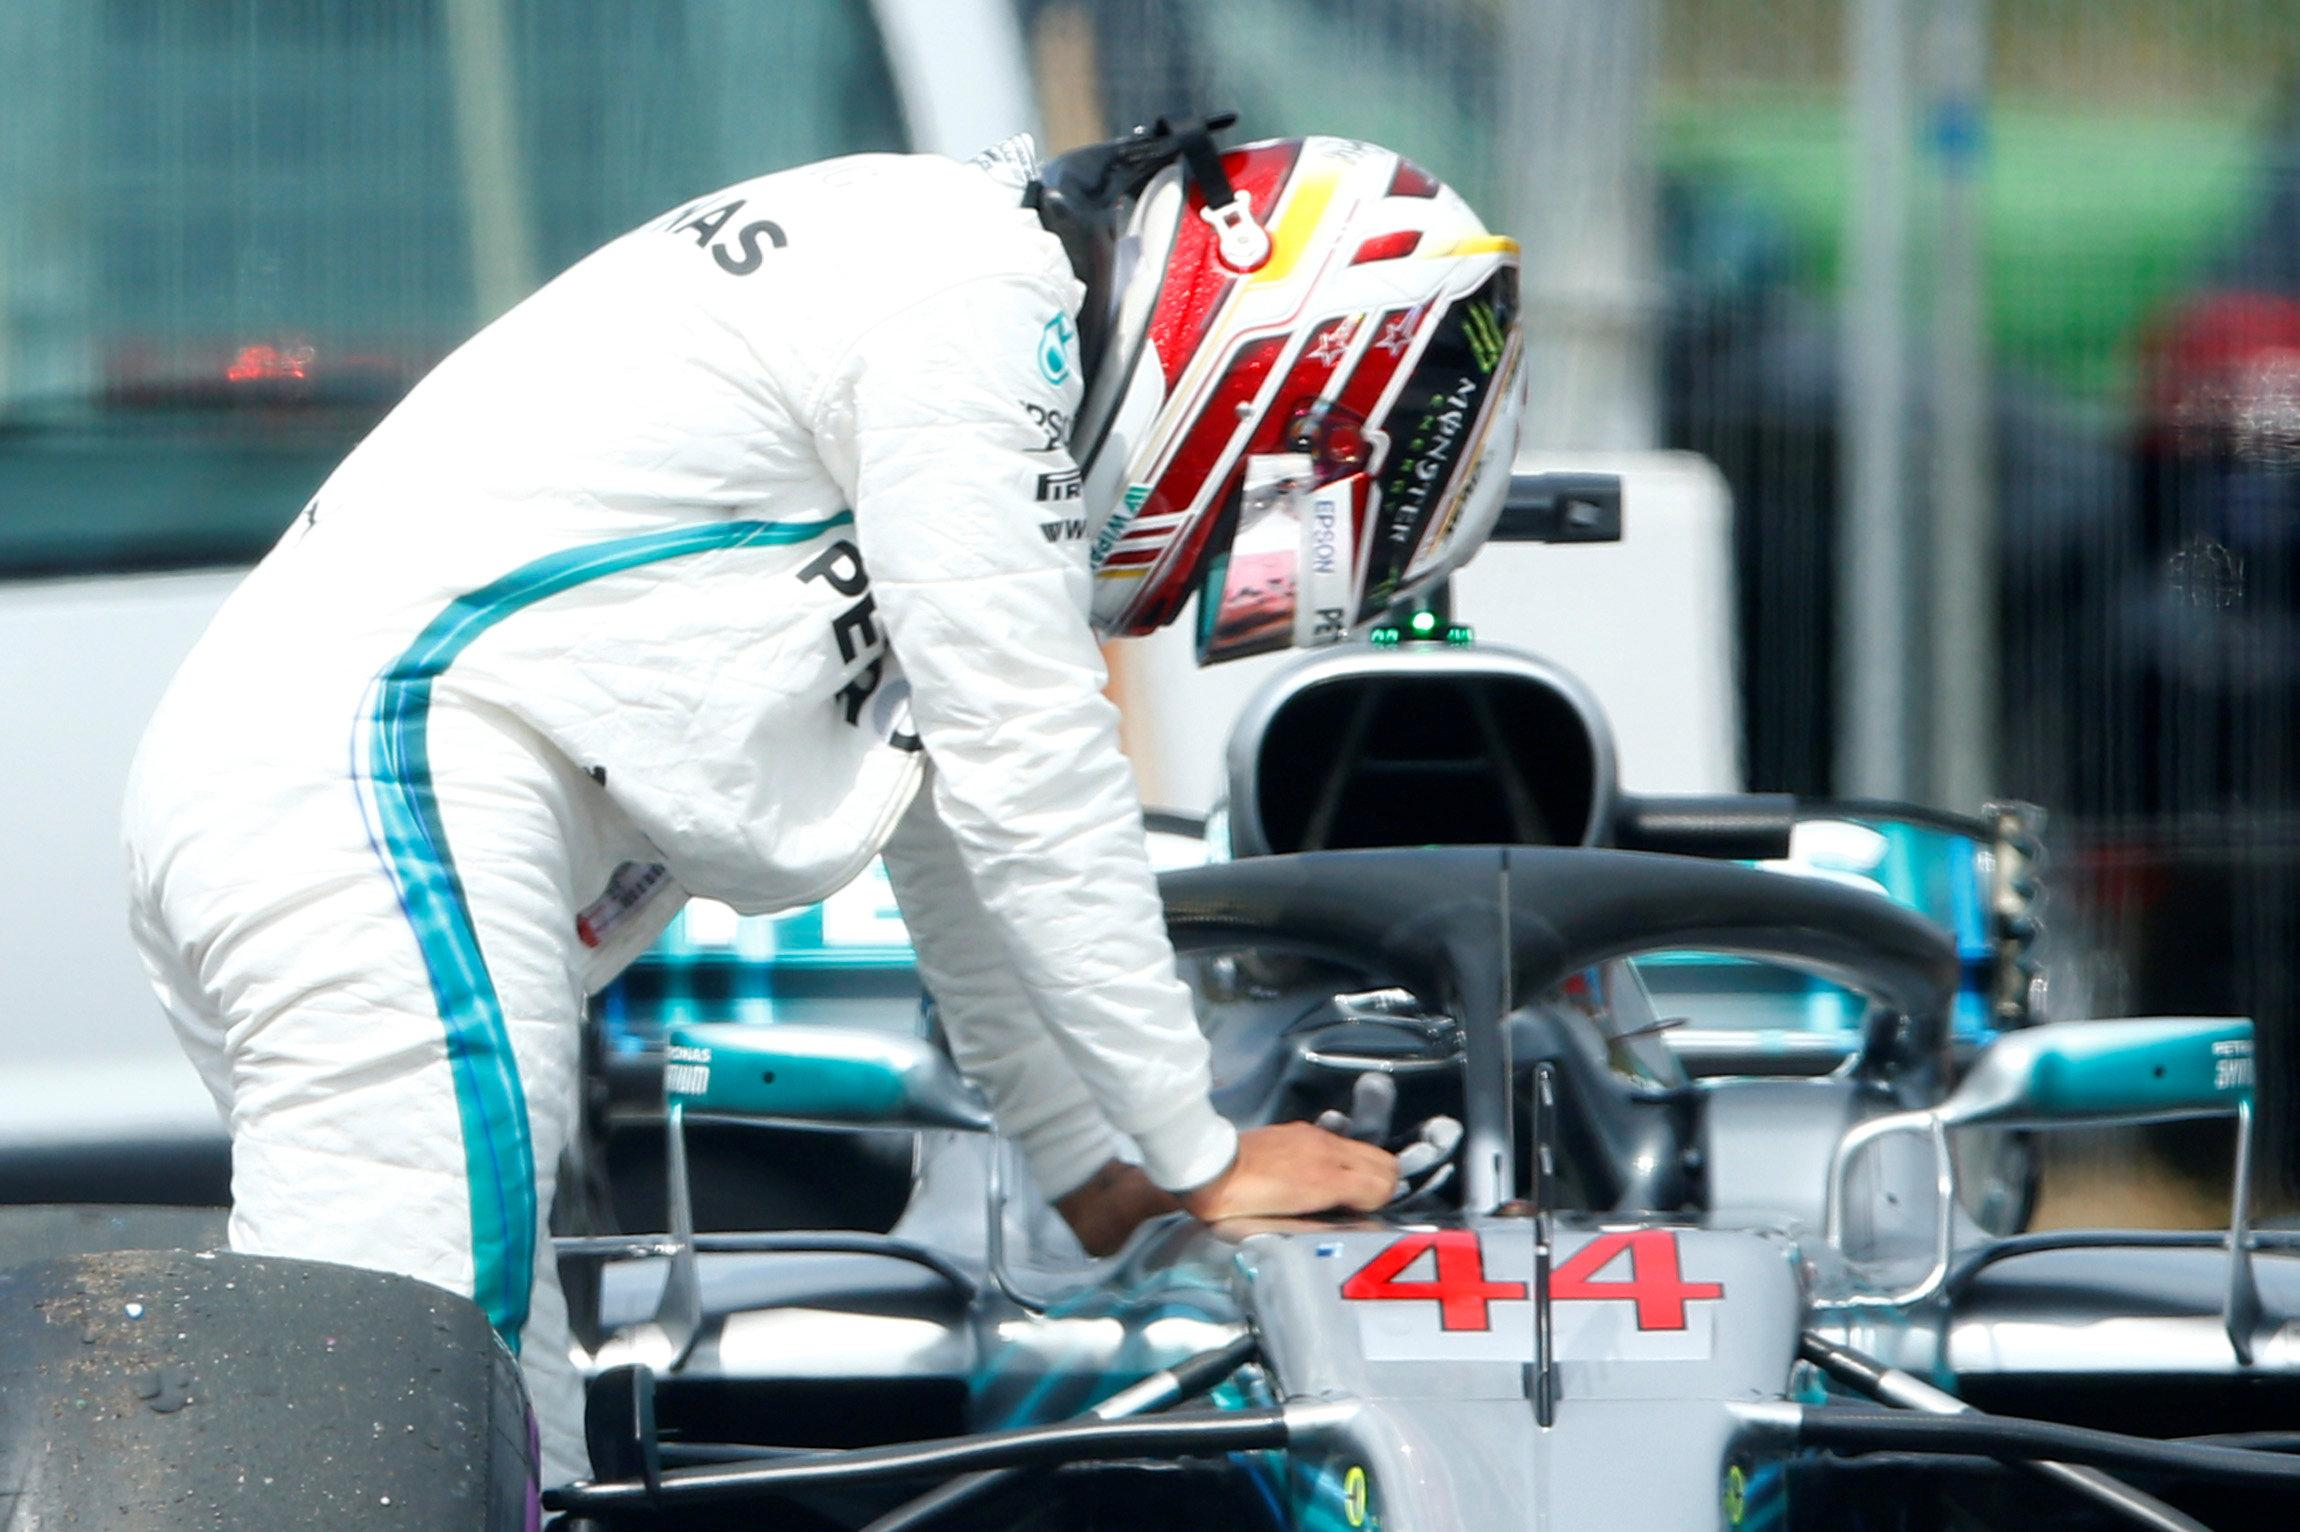 Hamilton contemplates his misfortune as he leaves his car on the side of the track